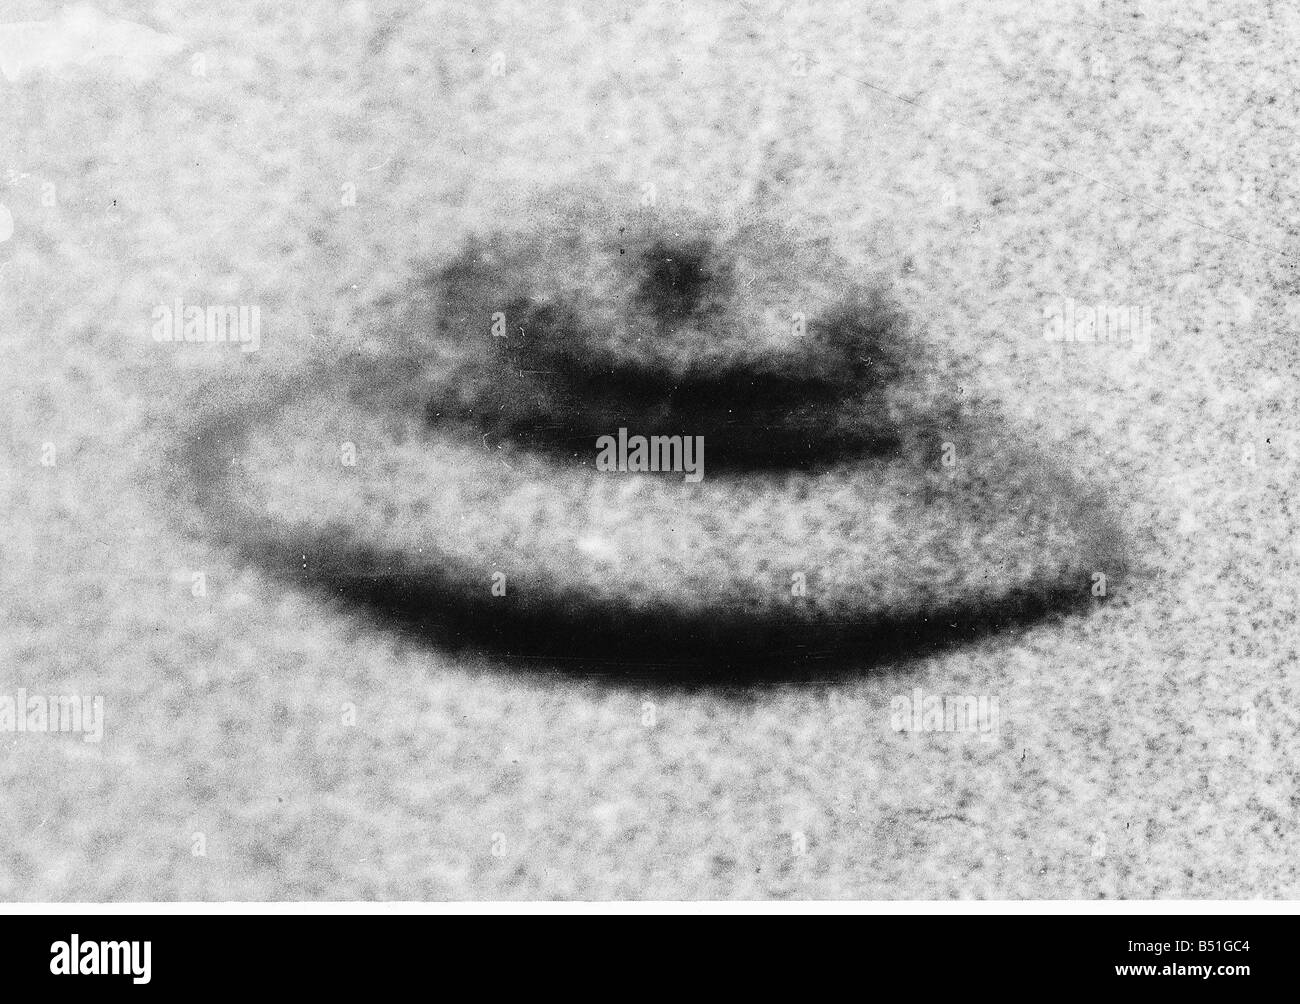 Air UFO s taken by Gordon Faulkner outside his home in Wiltshire - Stock Image